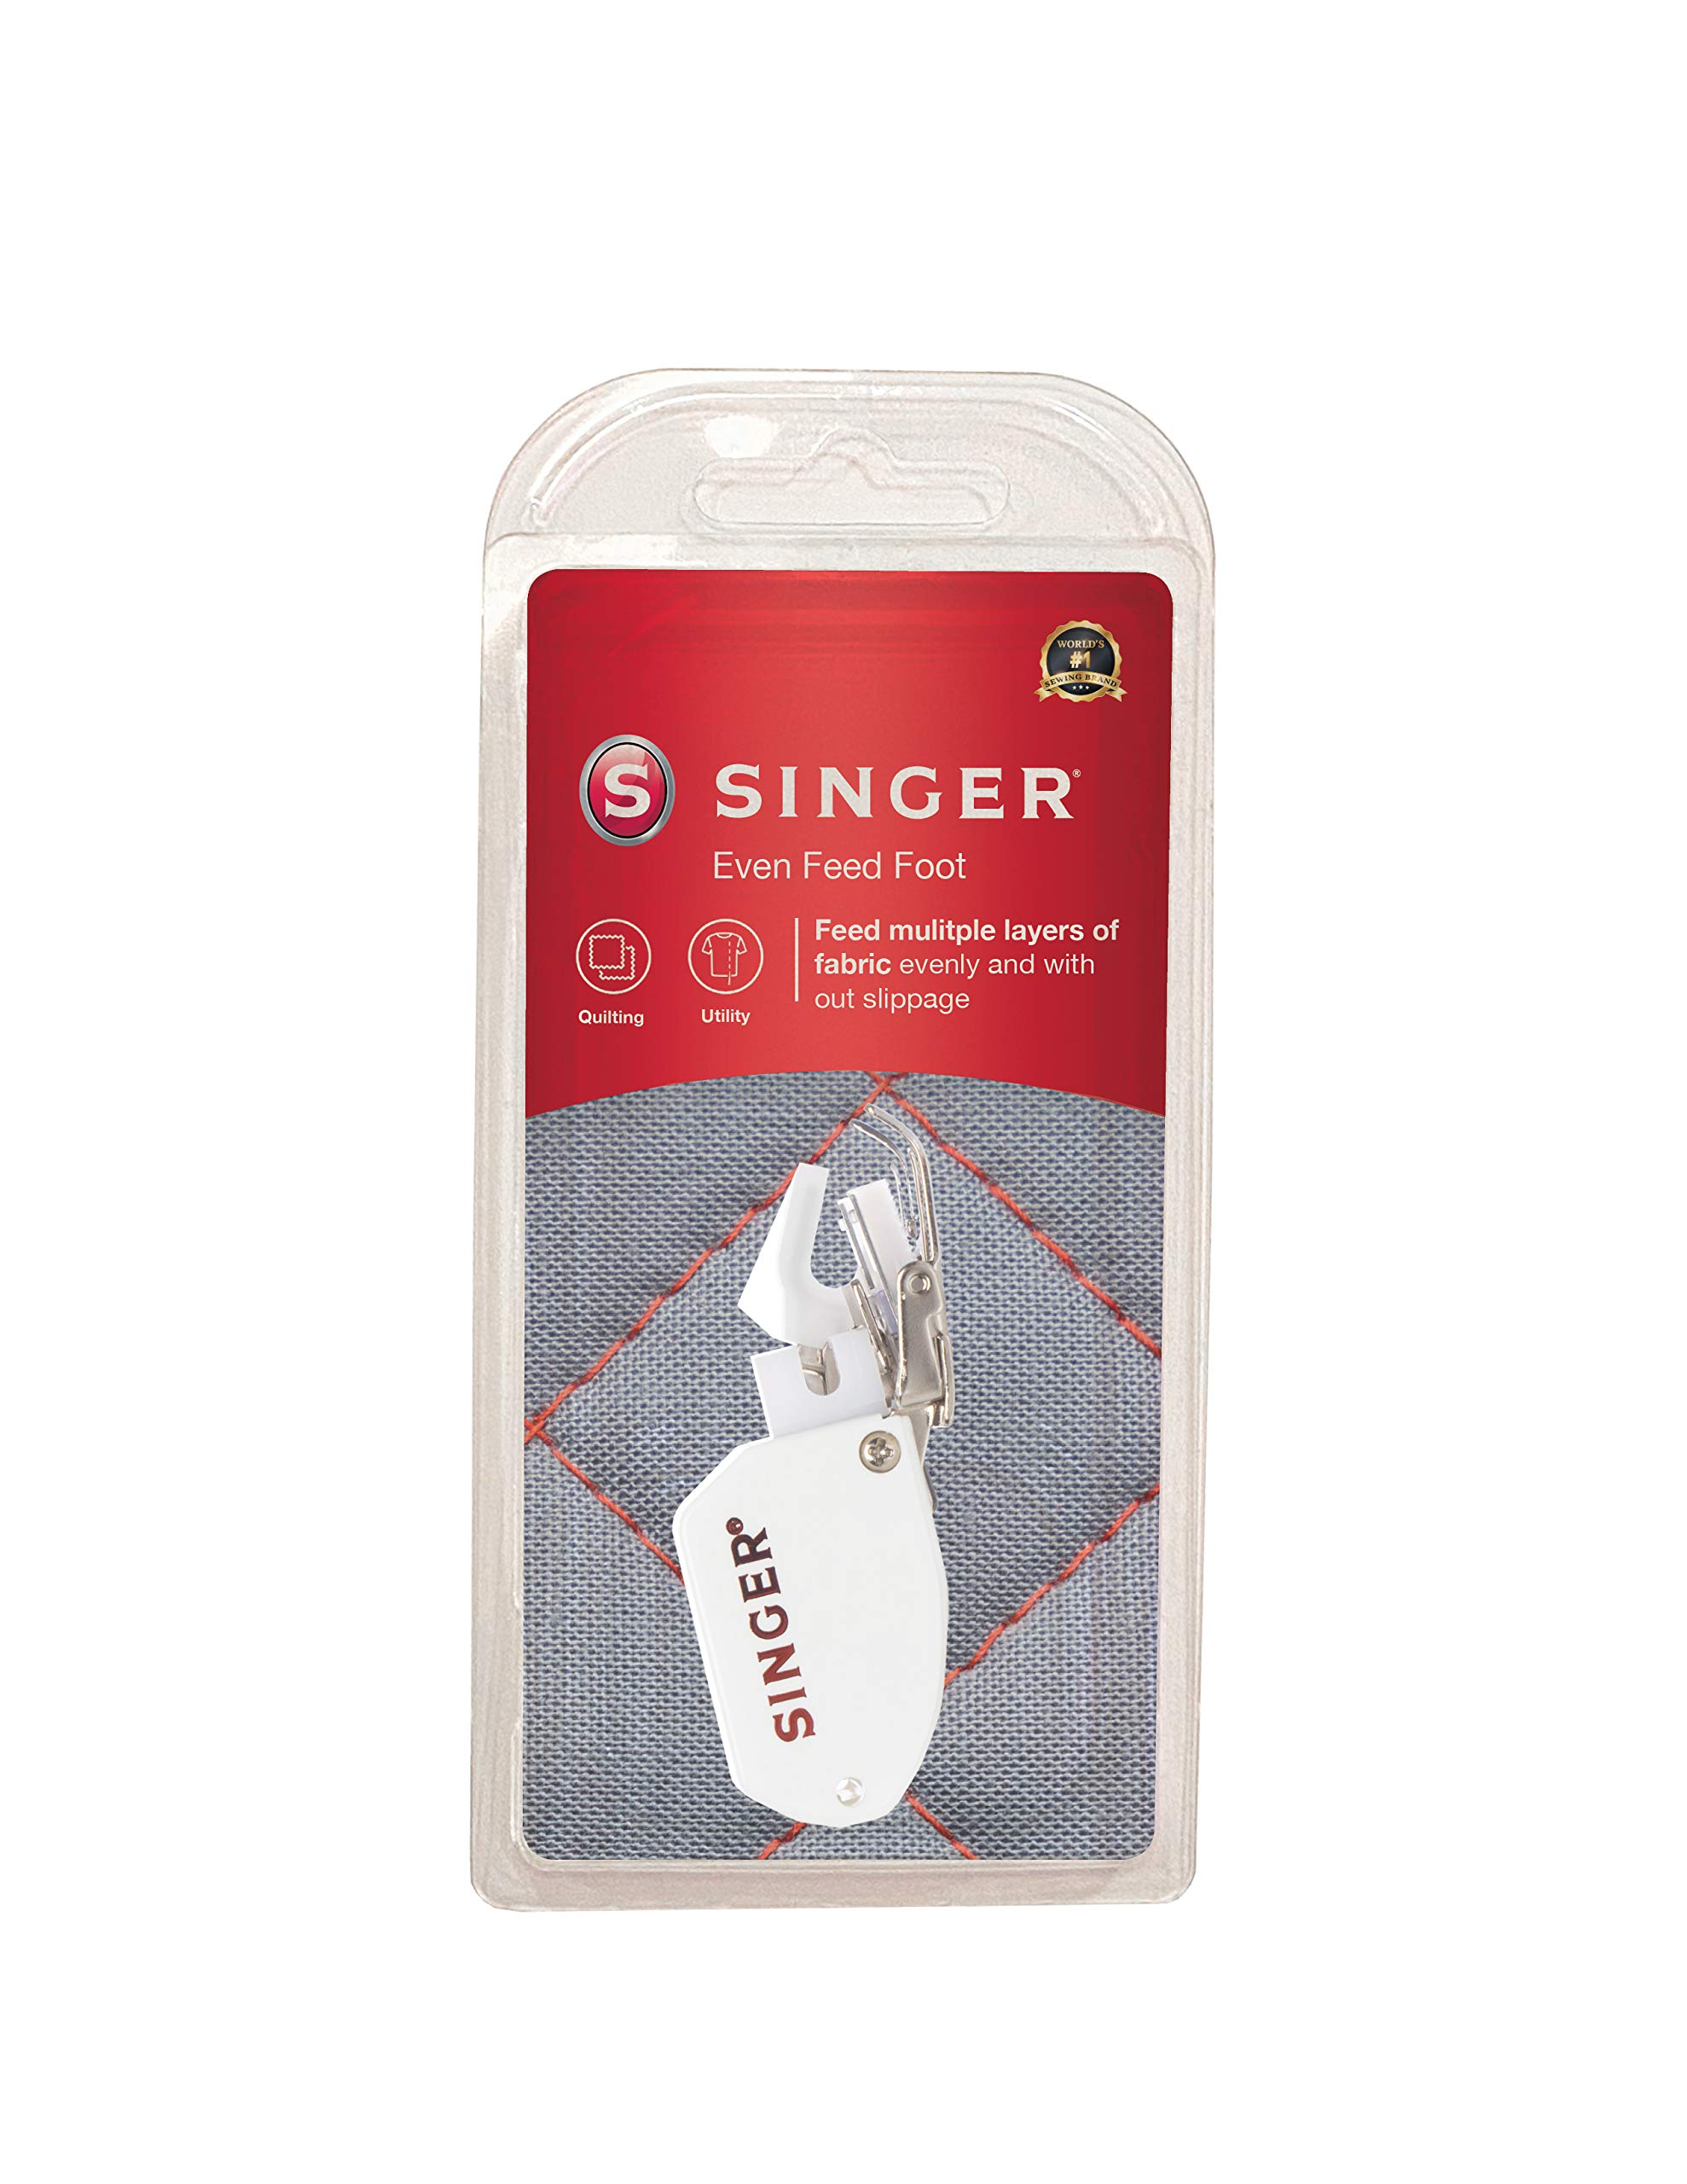 SINGER   Even Feed / Walking Presser Foot - Fork, Perfect for Matching Stripes & Plaids, Quilting & Sewing with Pile Fabrics - Sewing Made Easy